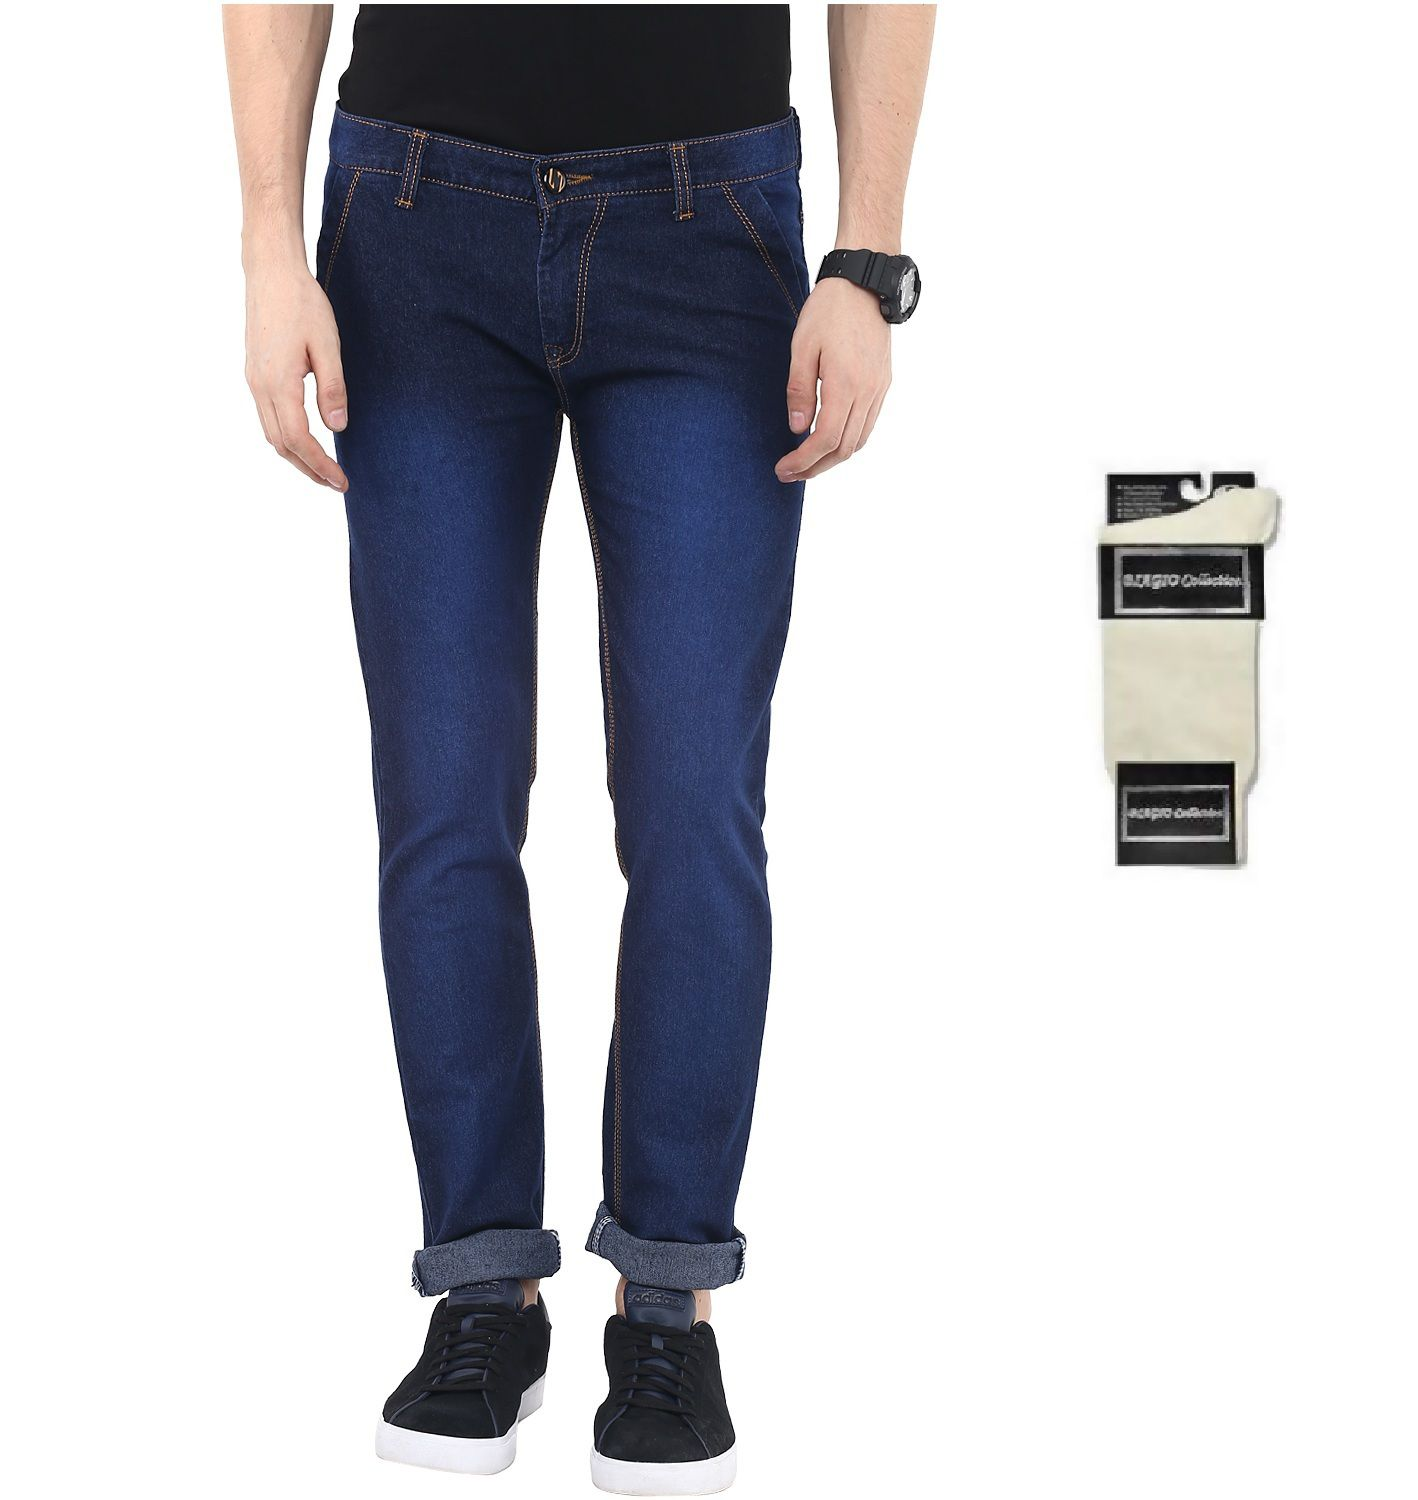 Urbano Fashion Blue Slim Fit Stretch Jeans With Free 1 Pair Of White Socks